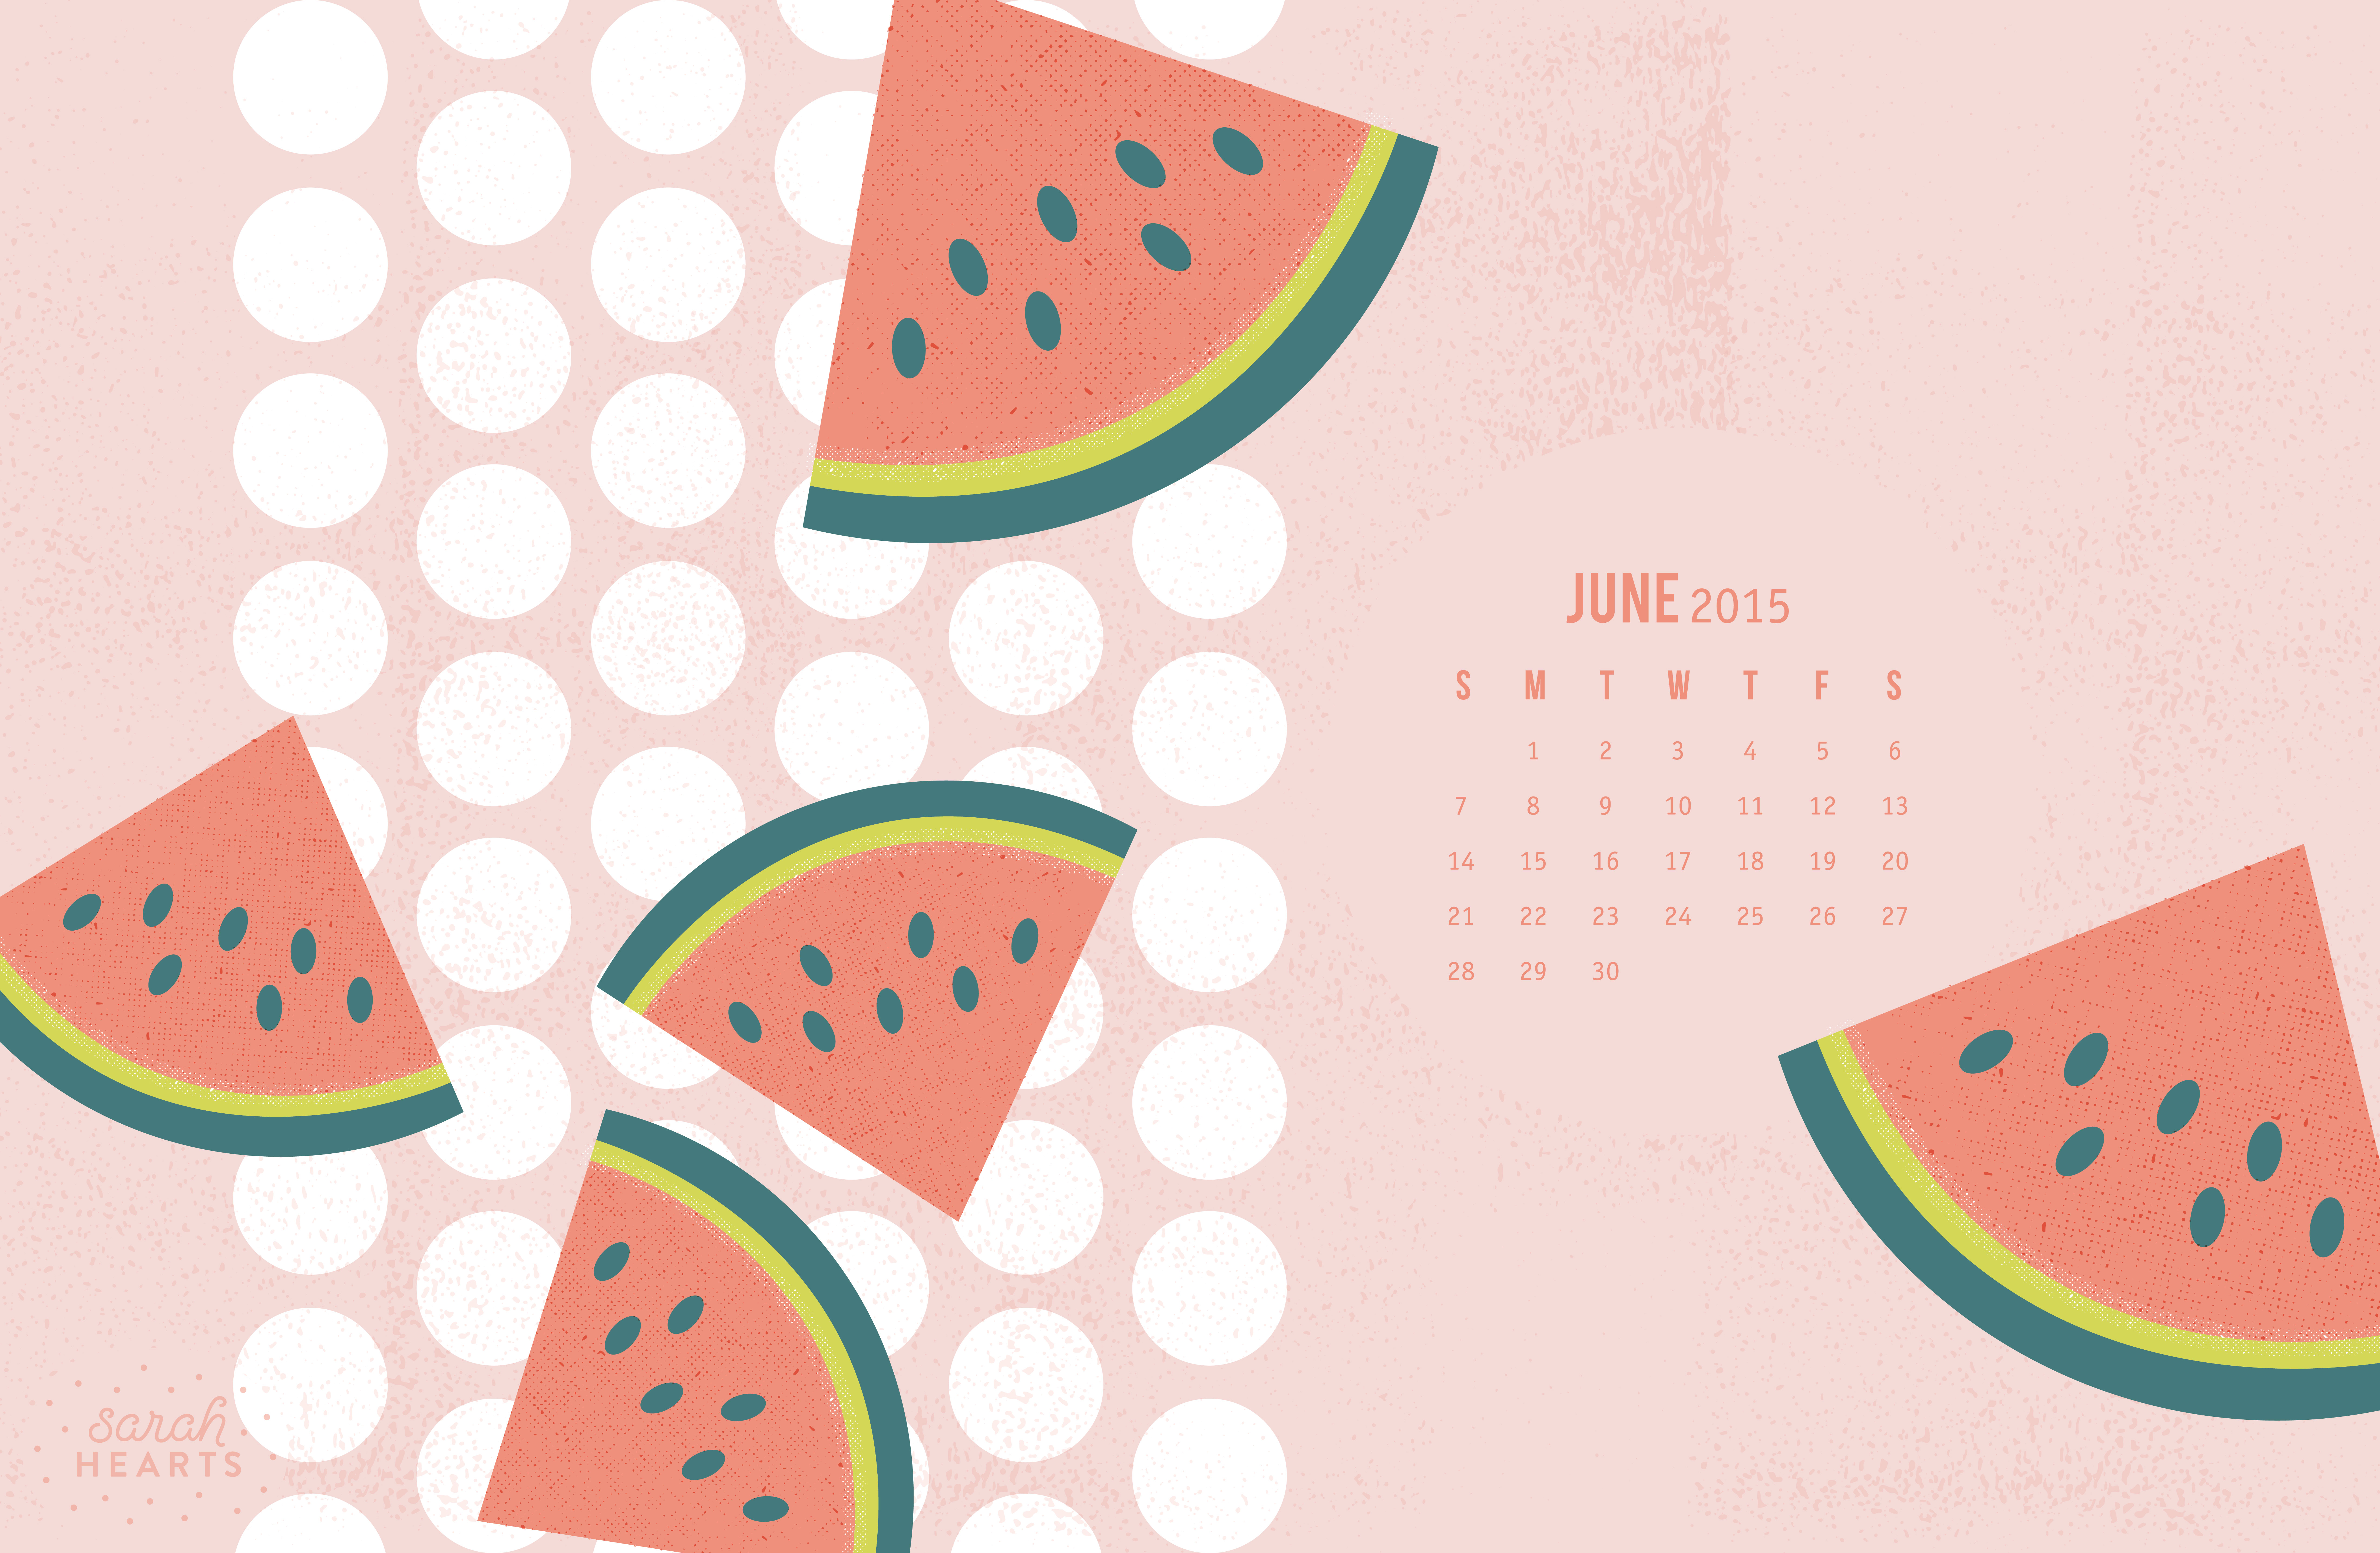 June 2015 Calendar Wallpaper   Sarah Hearts 8800x5744